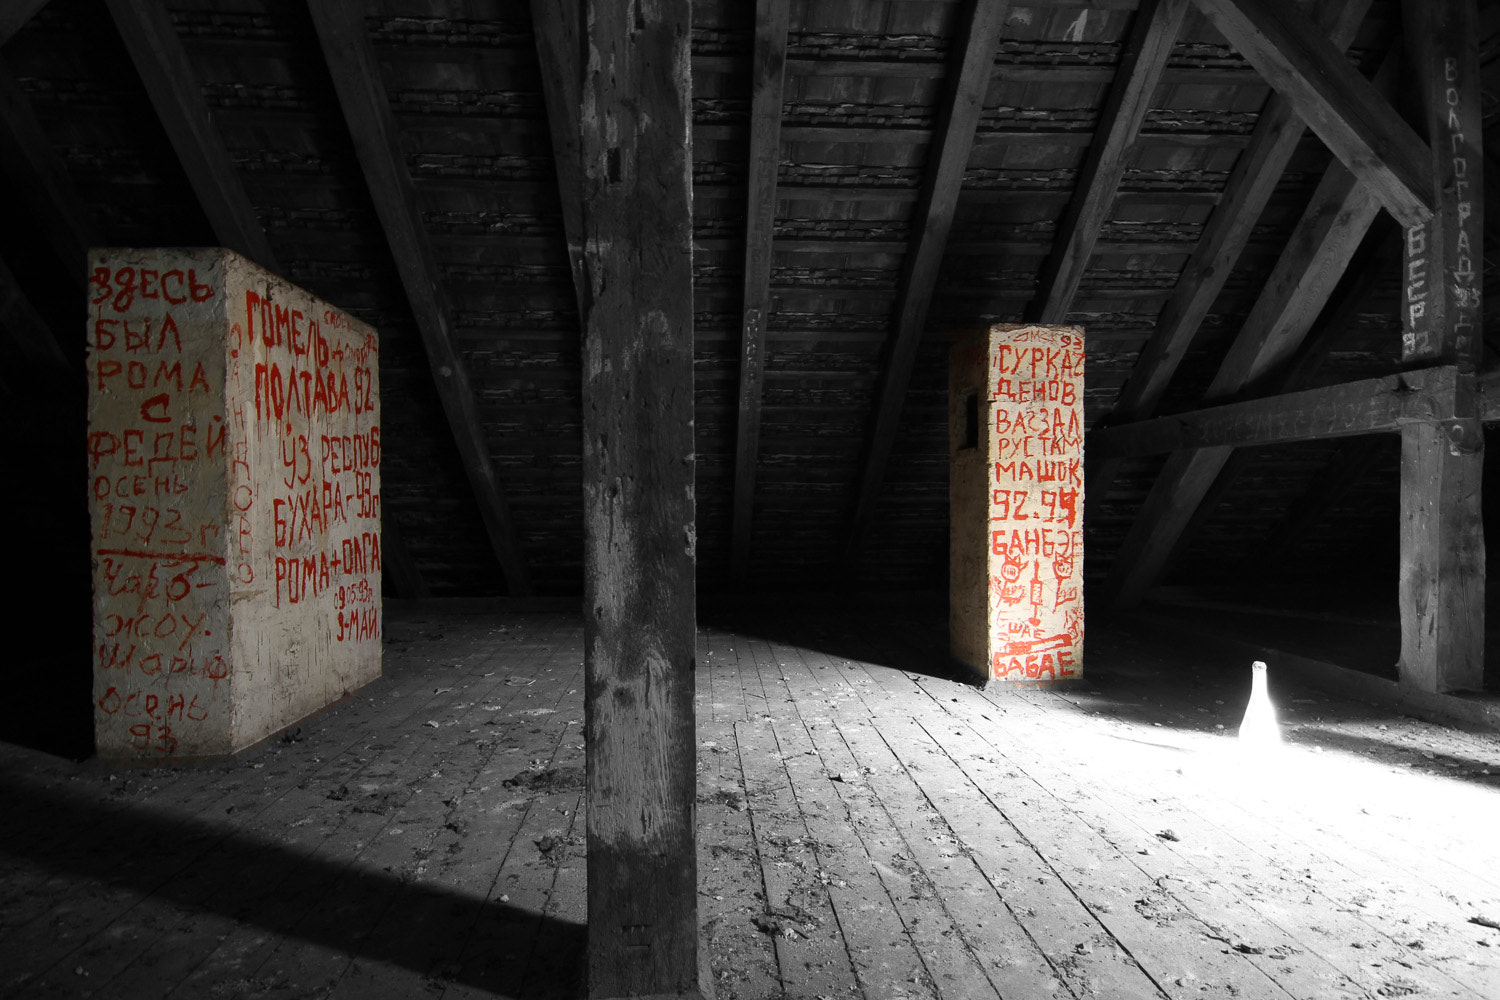 Photograph In the attic by Matthias Photography on 500px